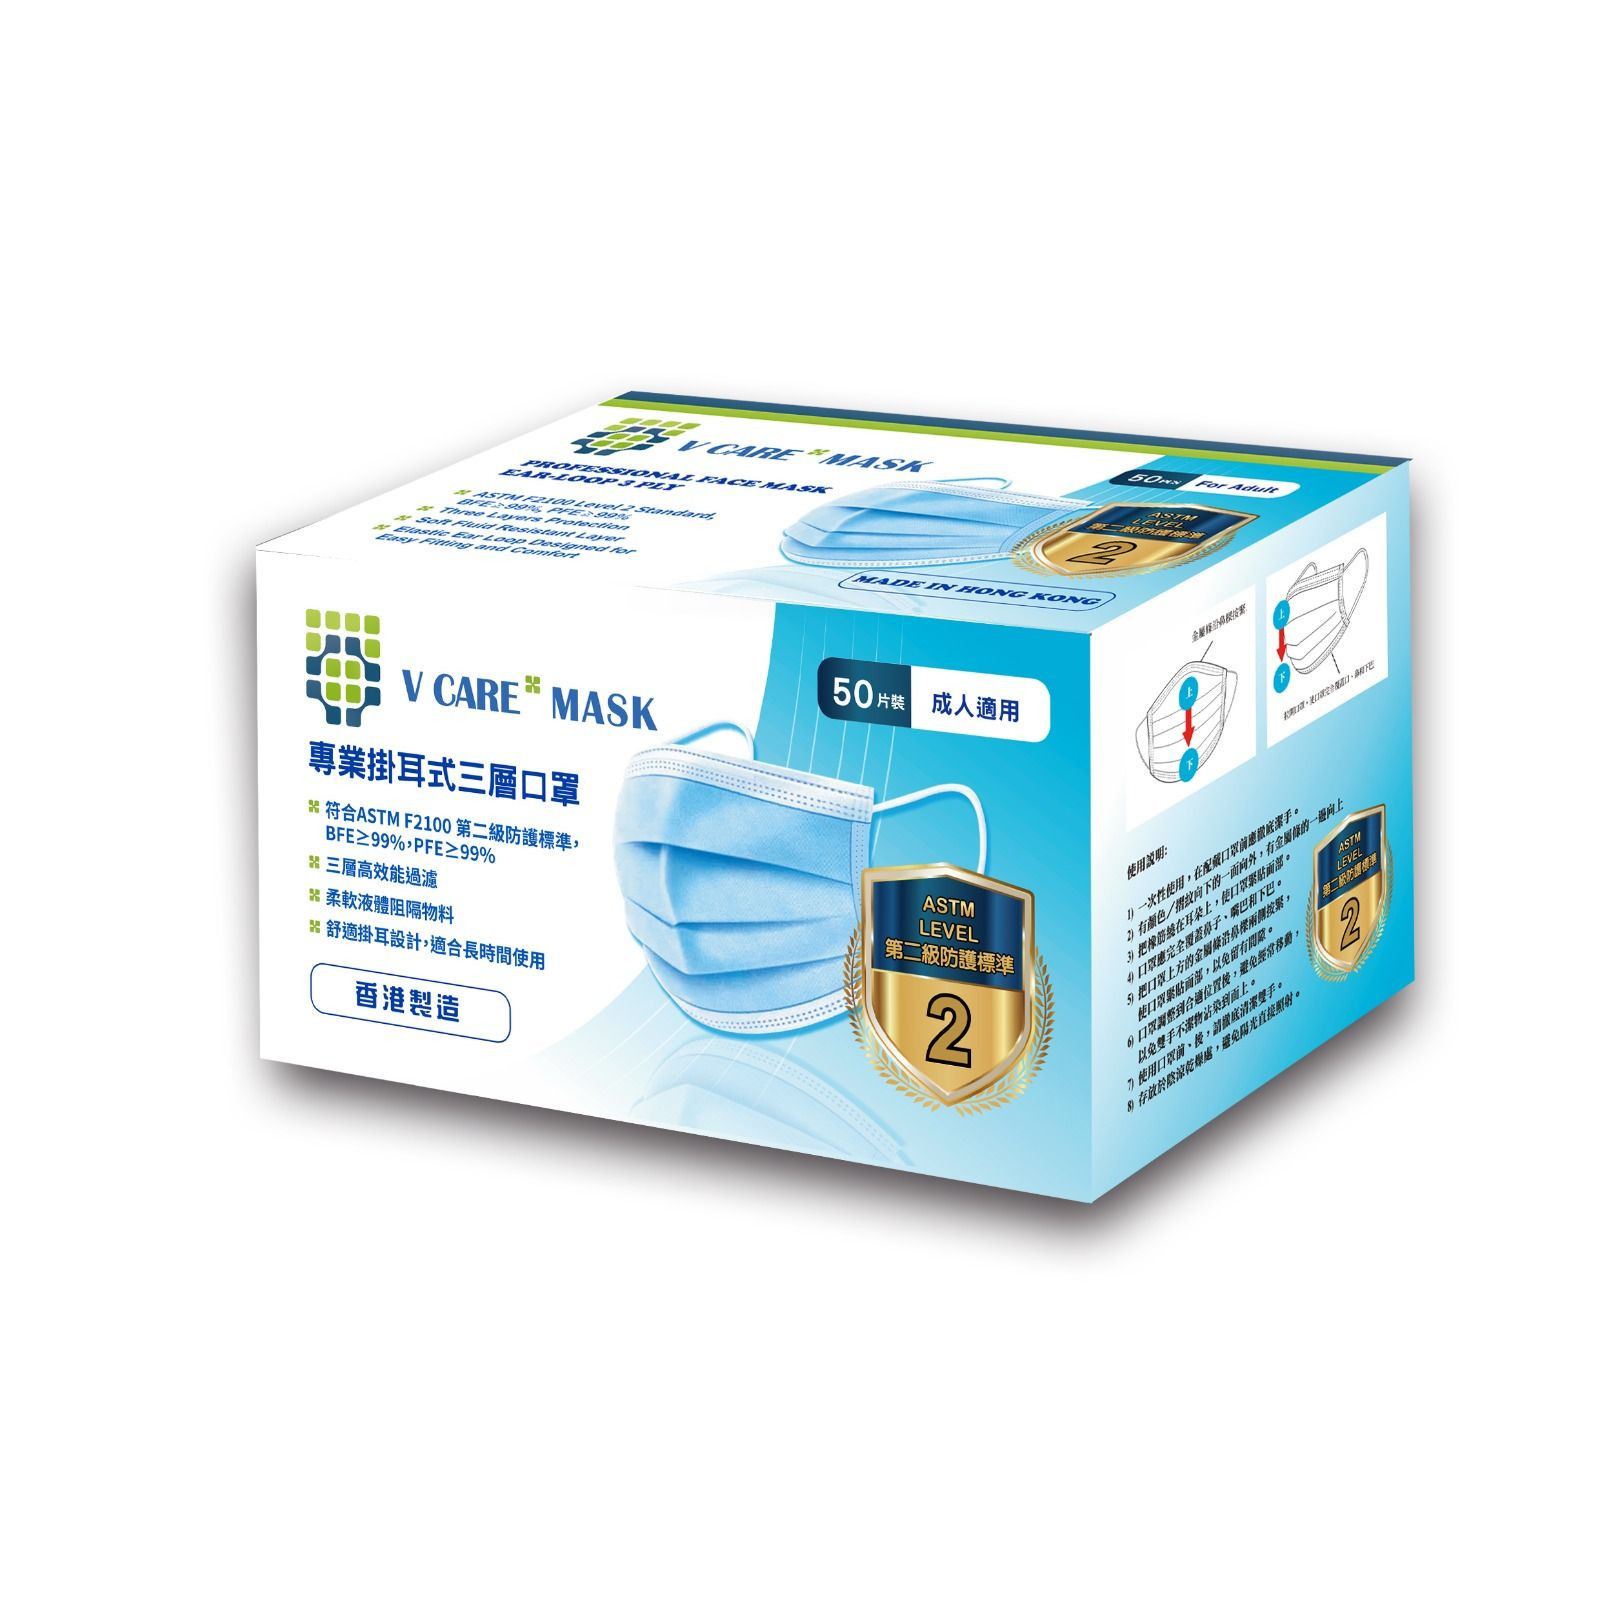 V Care Mask - Made in Hong Kong ASTM Level 2 ear-loop 3 ply disposable face mask FDA Certification BFE, PFE 99%